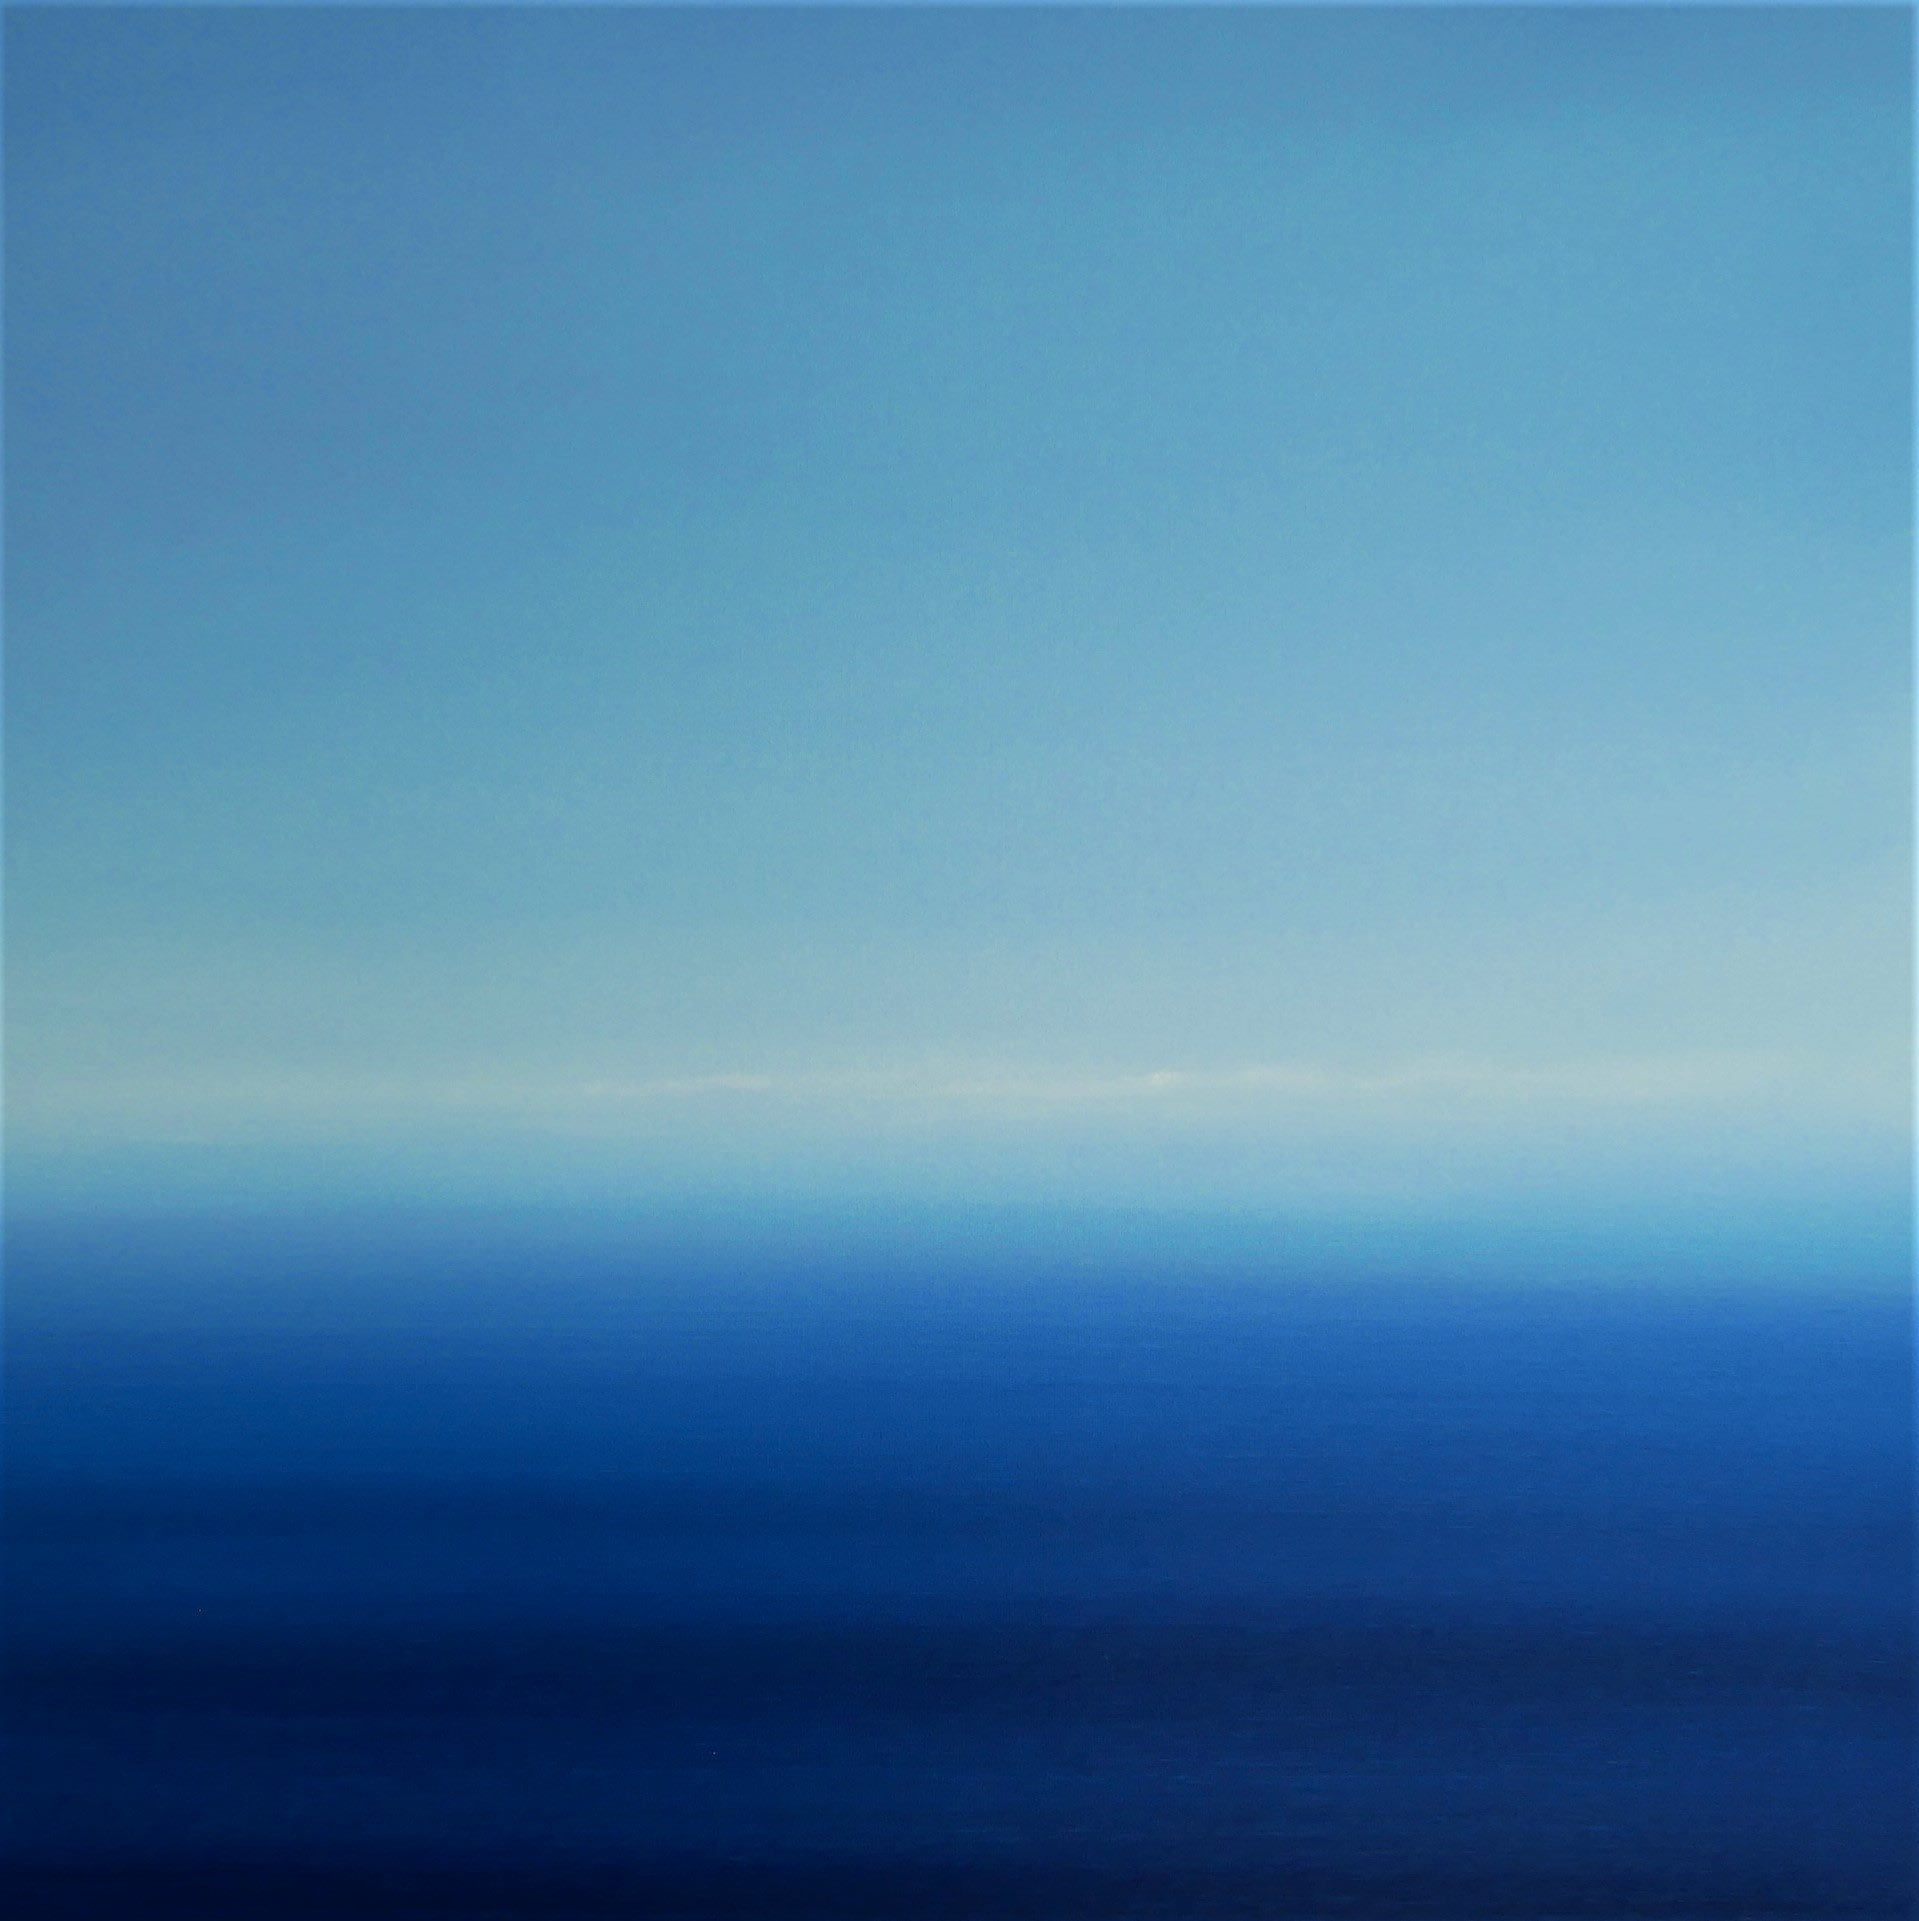 """<span class=""""link fancybox-details-link""""><a href=""""/artists/78-martyn-perryman/works/7914-martyn-perryman-calming-light-st-ives-bay-2021/"""">View Detail Page</a></span><div class=""""artist""""><strong>Martyn Perryman</strong></div> b. 1963 <div class=""""title""""><em>Calming Light St Ives Bay </em>, 2021</div> <div class=""""medium"""">oil on canvas<br /> framed</div> <div class=""""dimensions"""">canvas size: h. 80 x w. 80 cm <br /> <br /> </div><div class=""""copyright_line"""">Ownart: £120 x 10 Months, 0% APR</div>"""